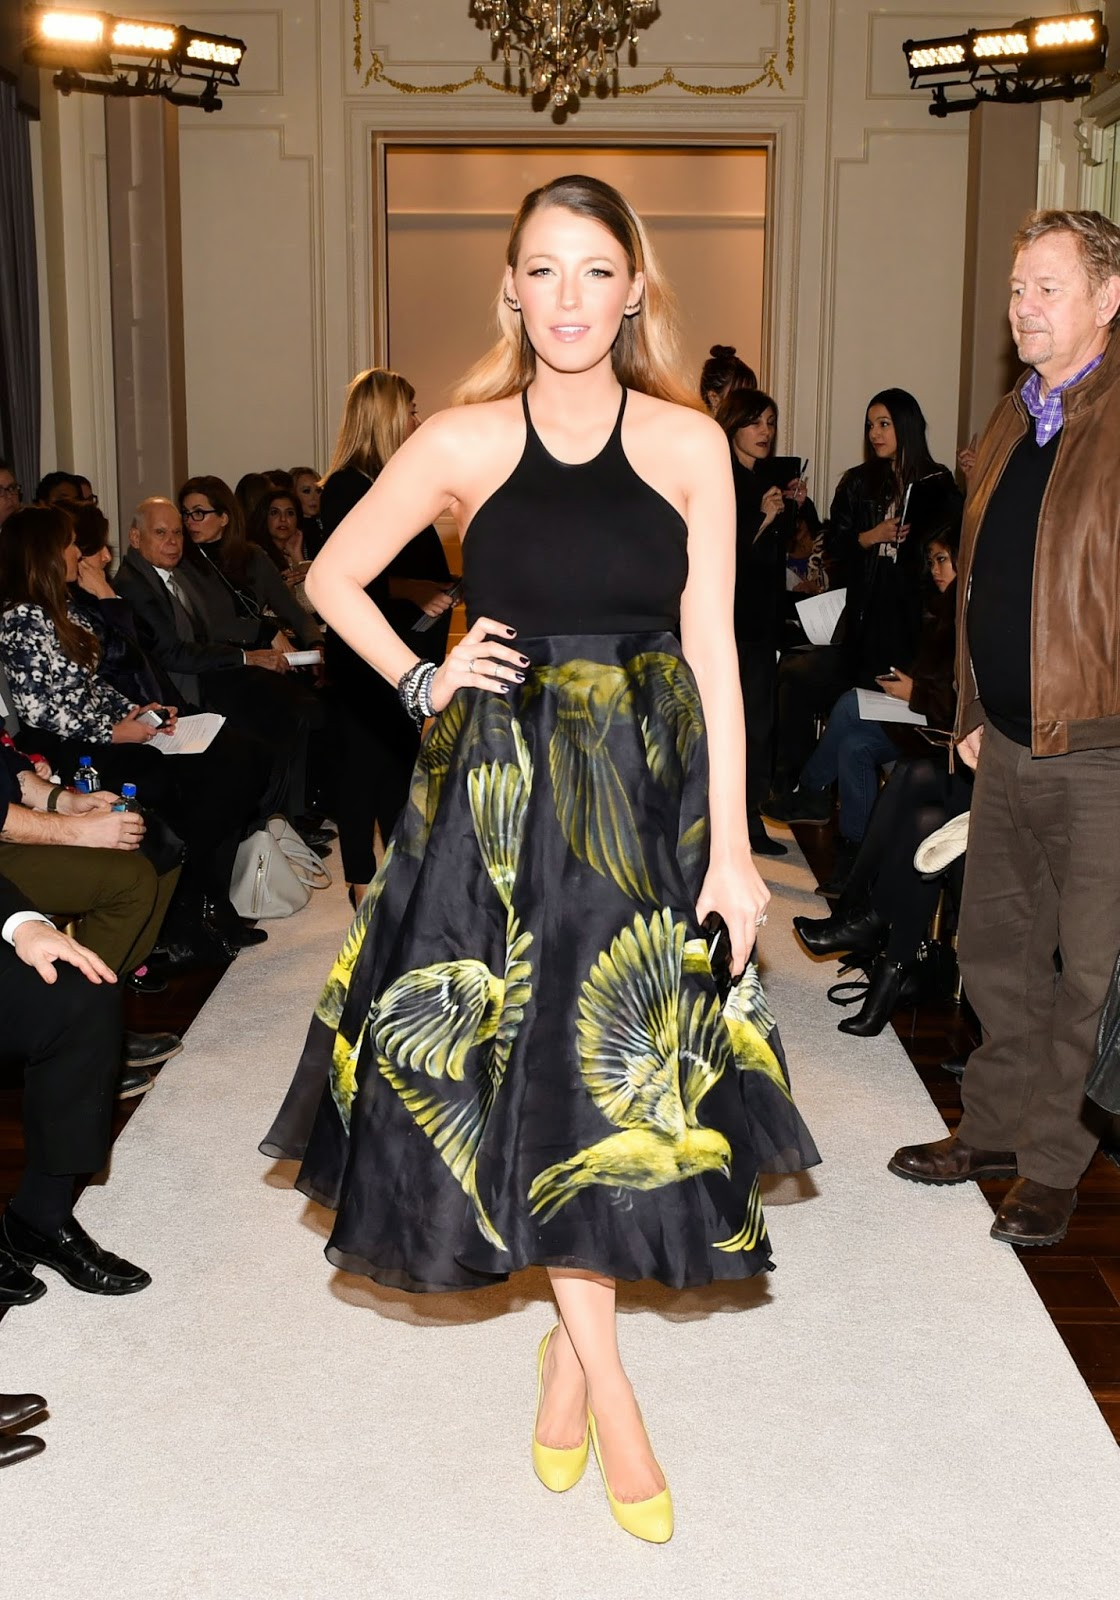 Actress, Model, Celebrity: Blake Lively - Marchesa Fashion Show in NYC